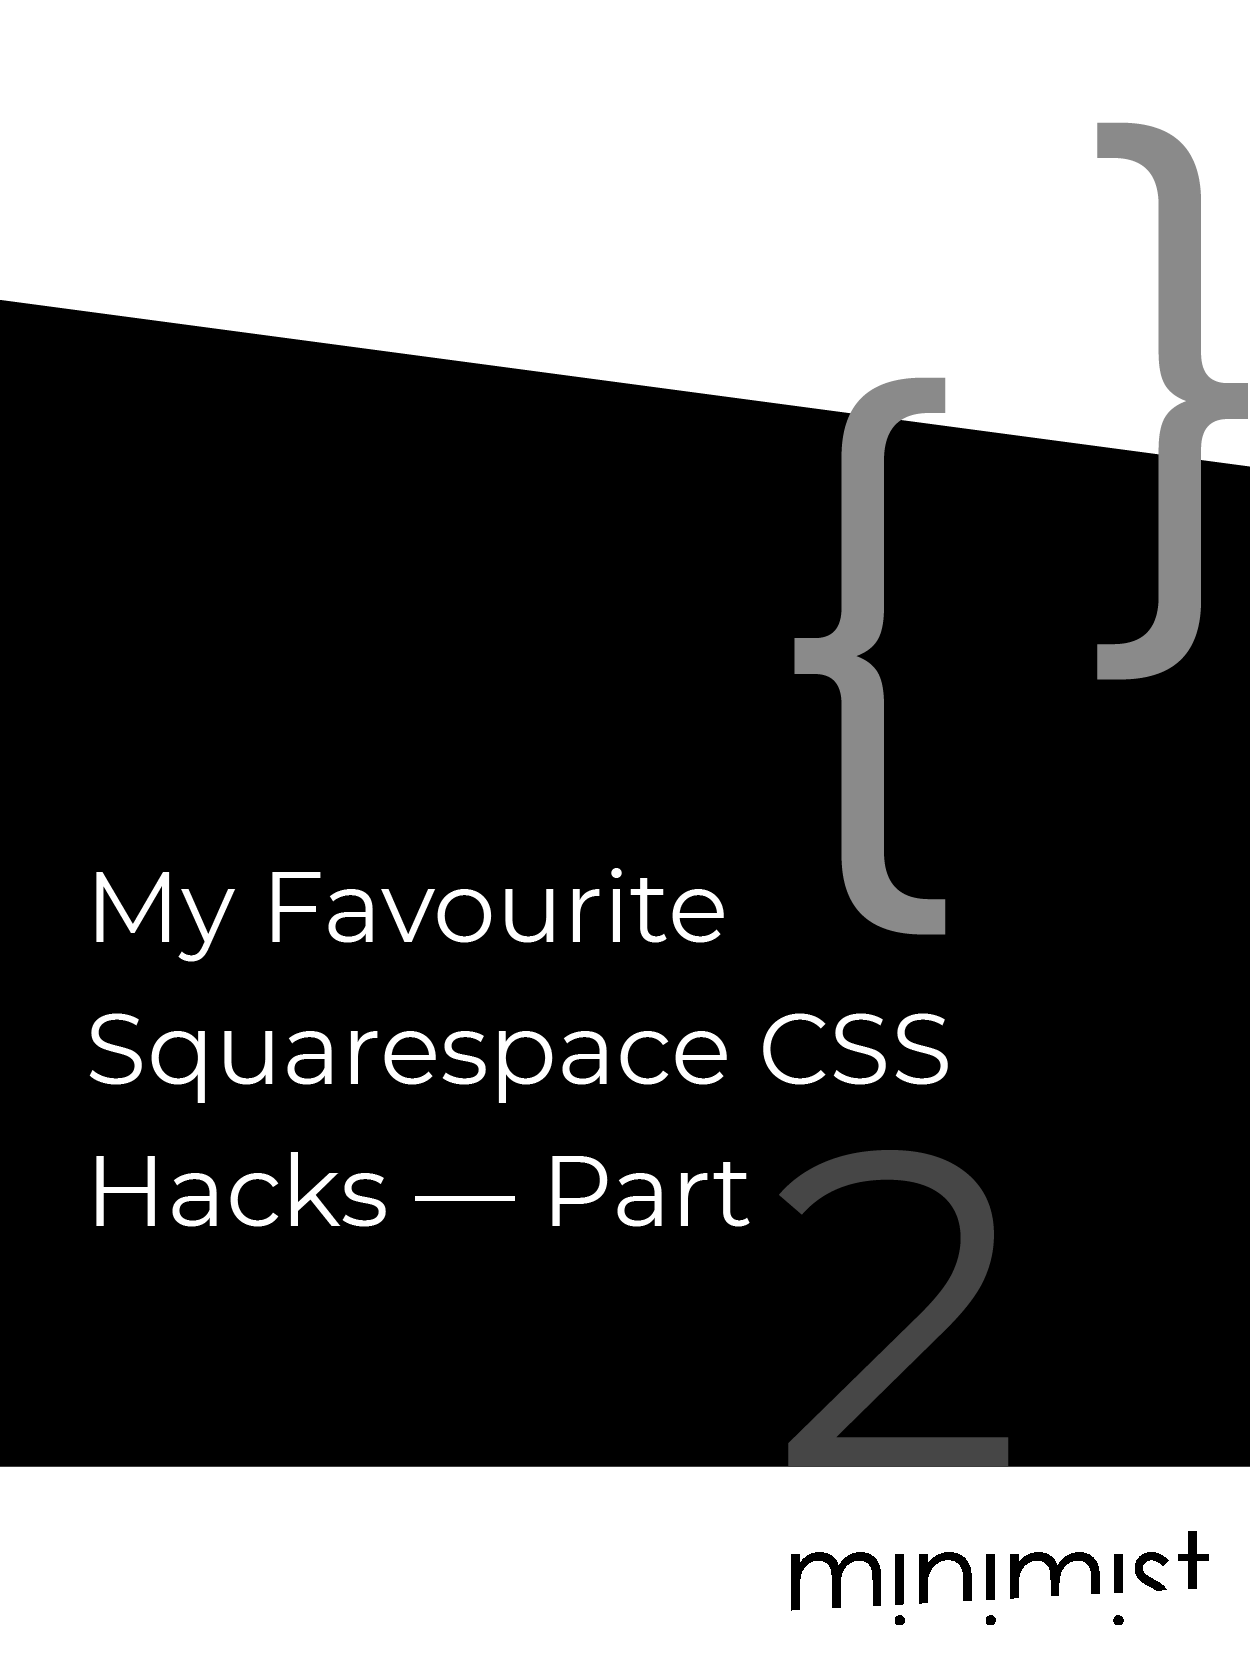 My Favourite Squarespace CSS Hacks — Part 2